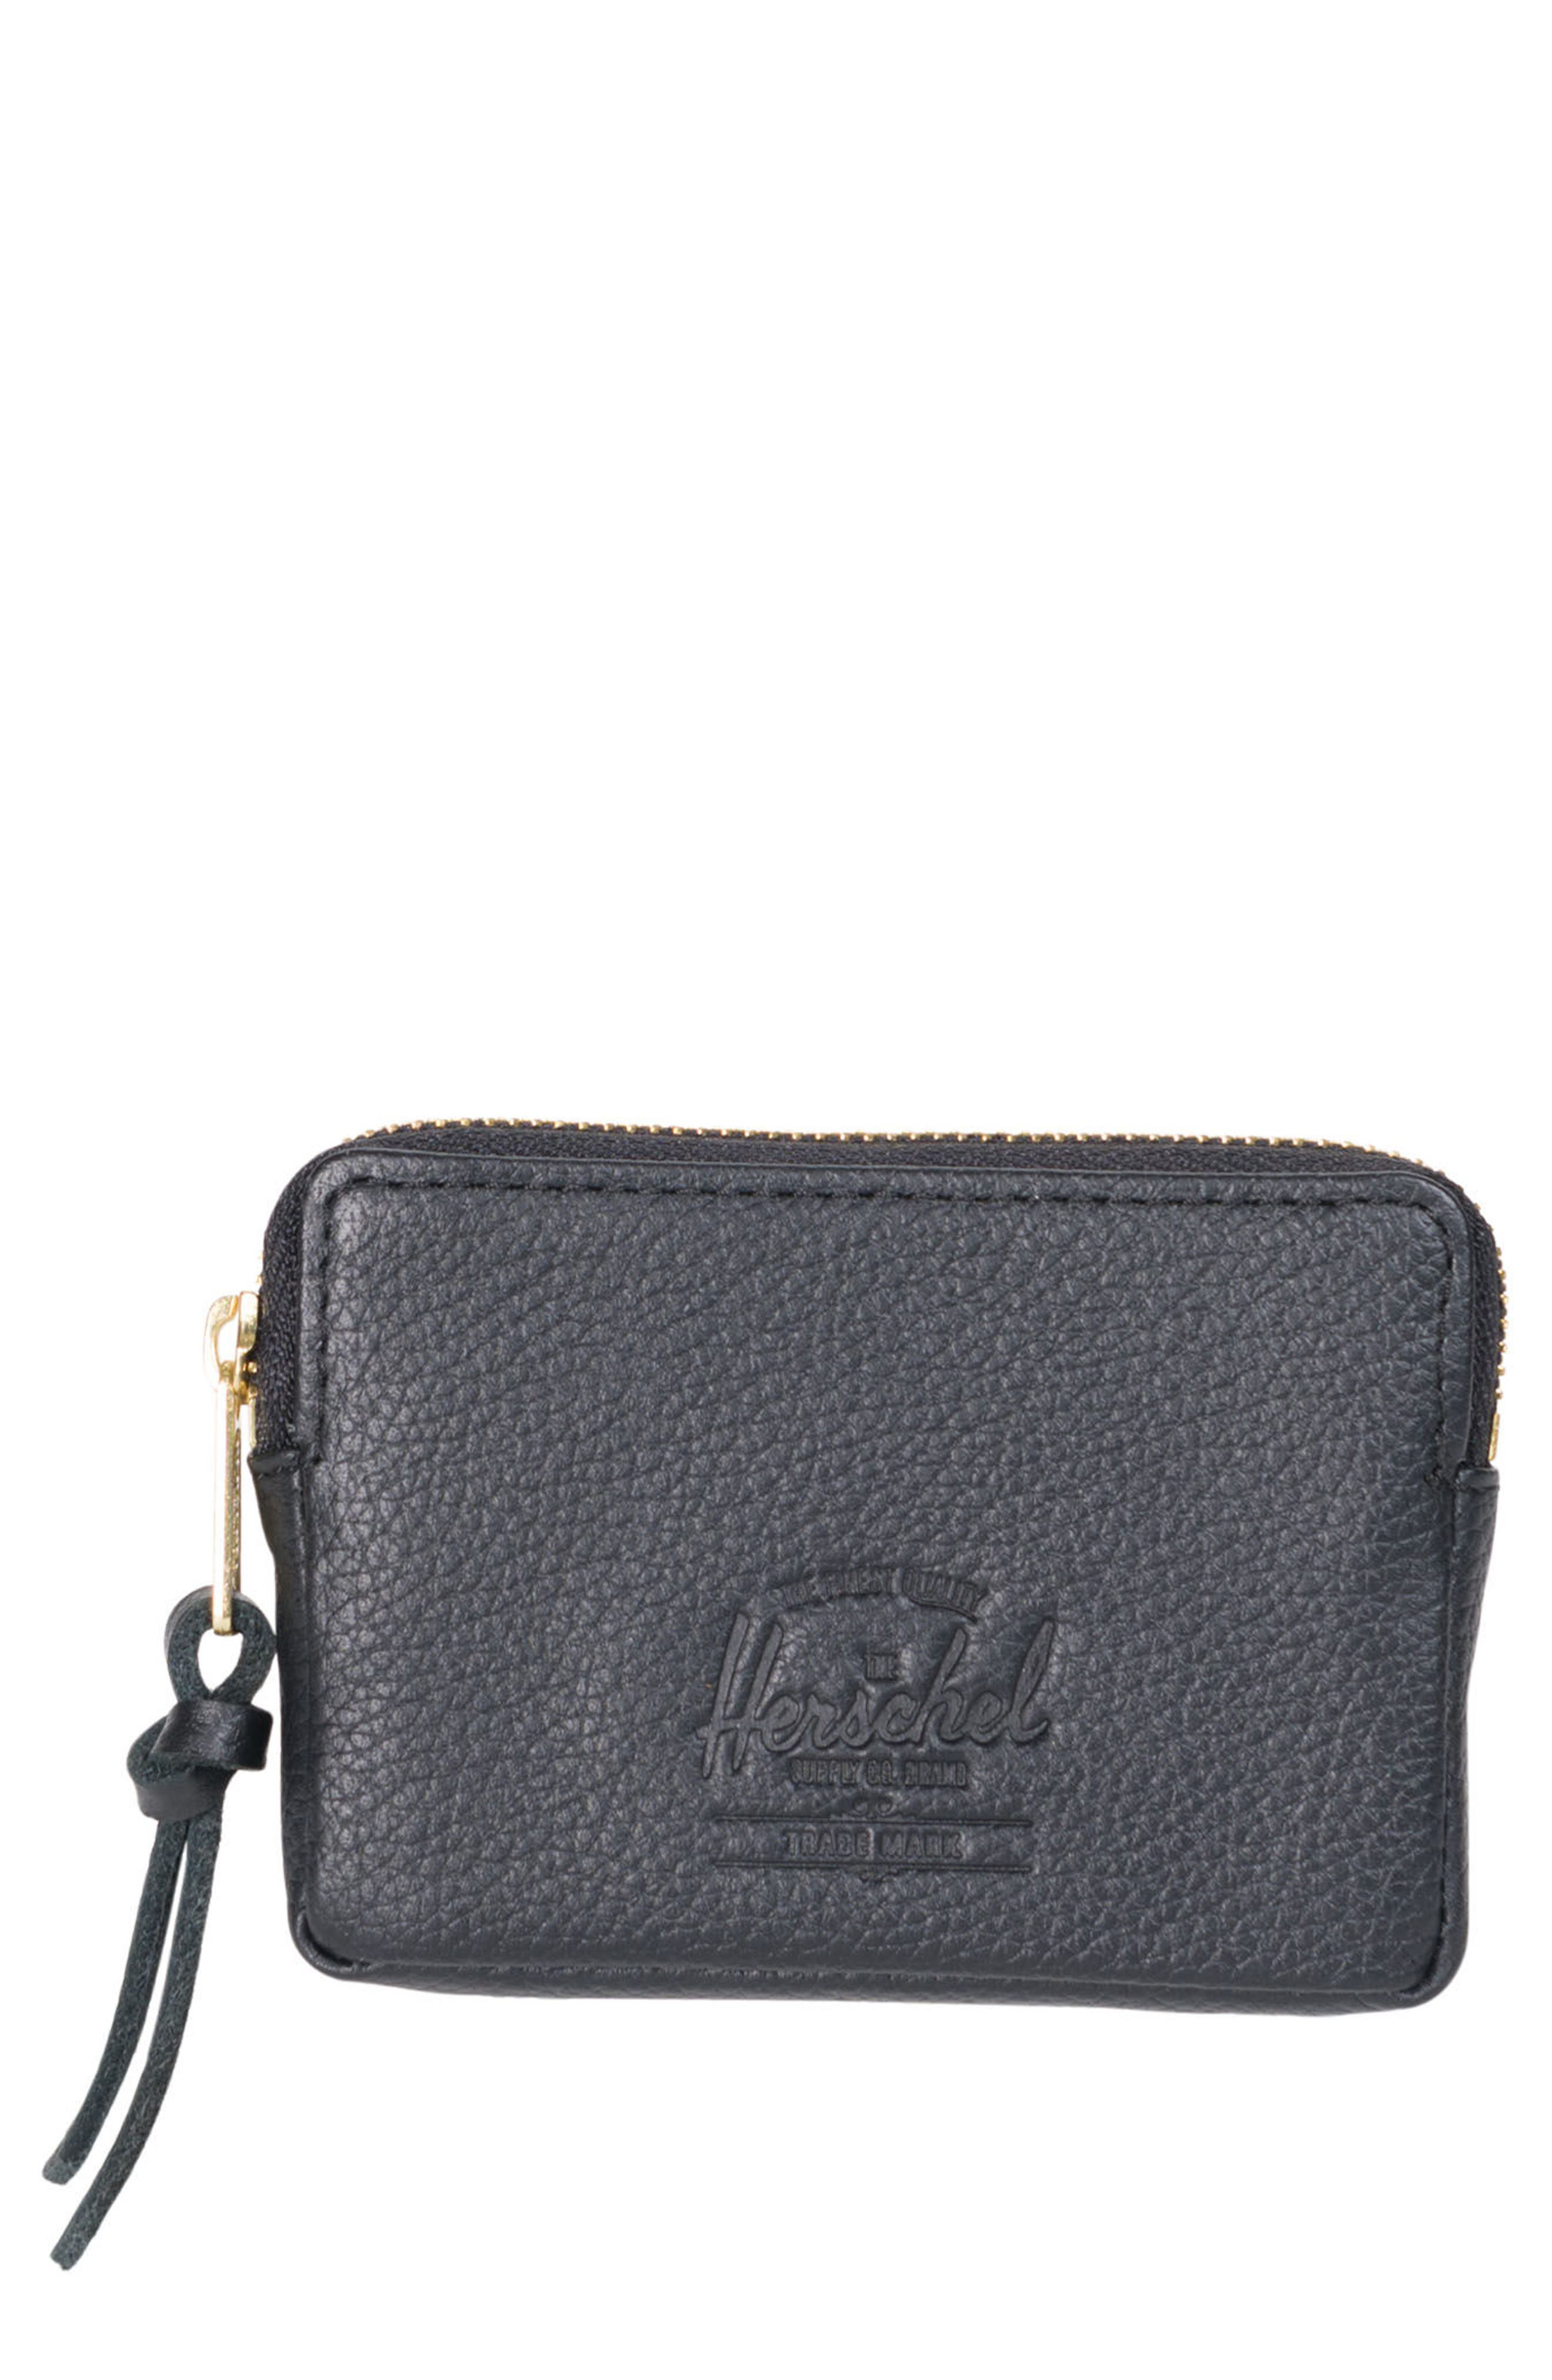 Alternate Image 1 Selected - Herschel Supply Co. Leather Zip Pouch